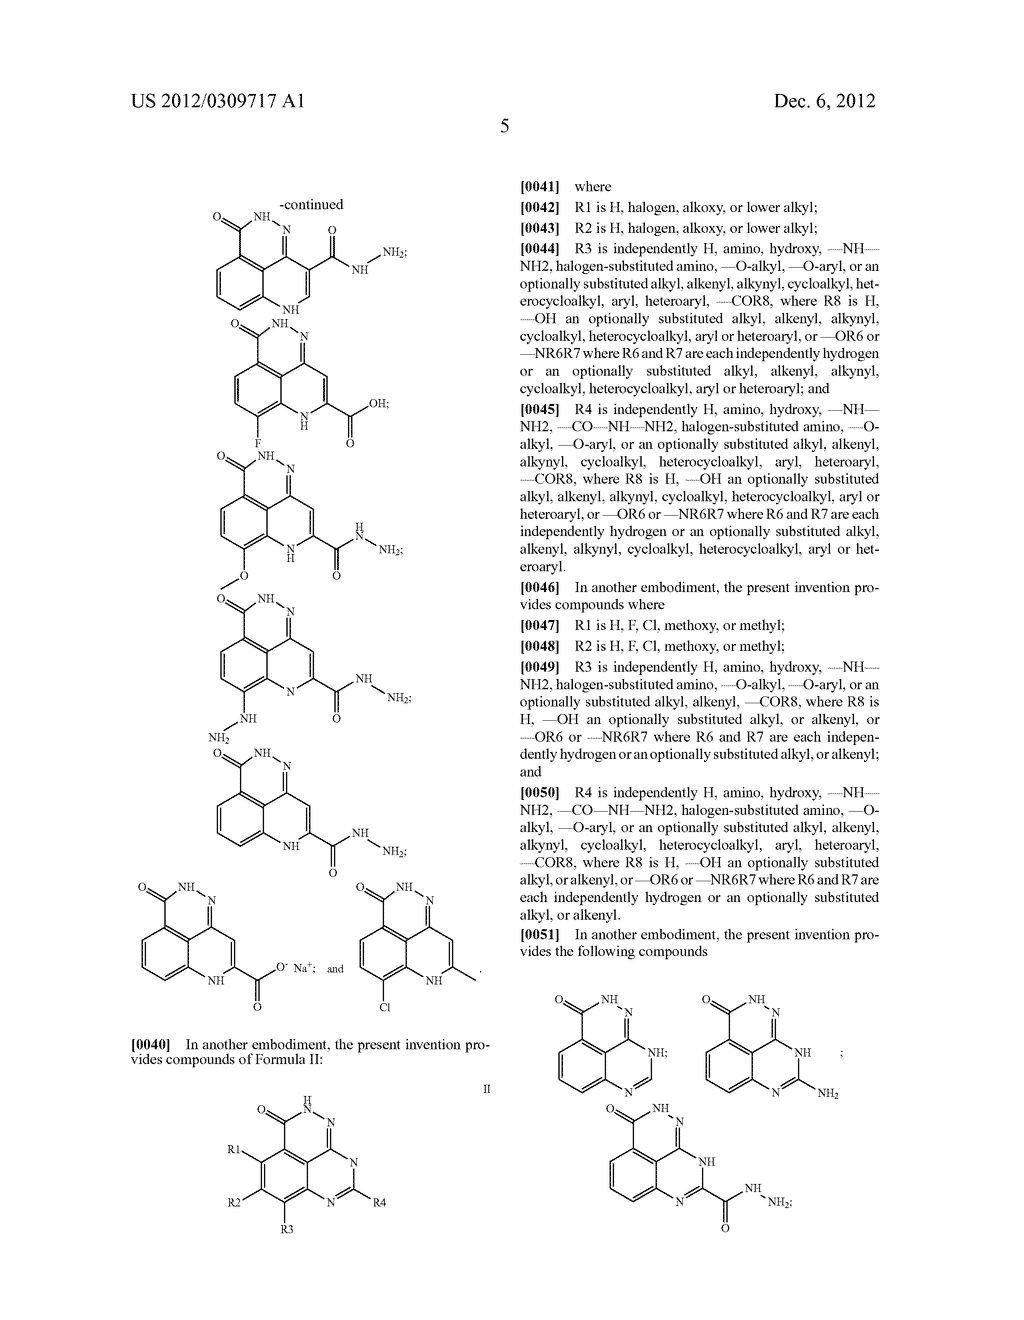 COMPOUNDS, METHODS AND PHARMACEUTICAL COMPOSITIONS FOR INHIBITING PARP - diagram, schematic, and image 07